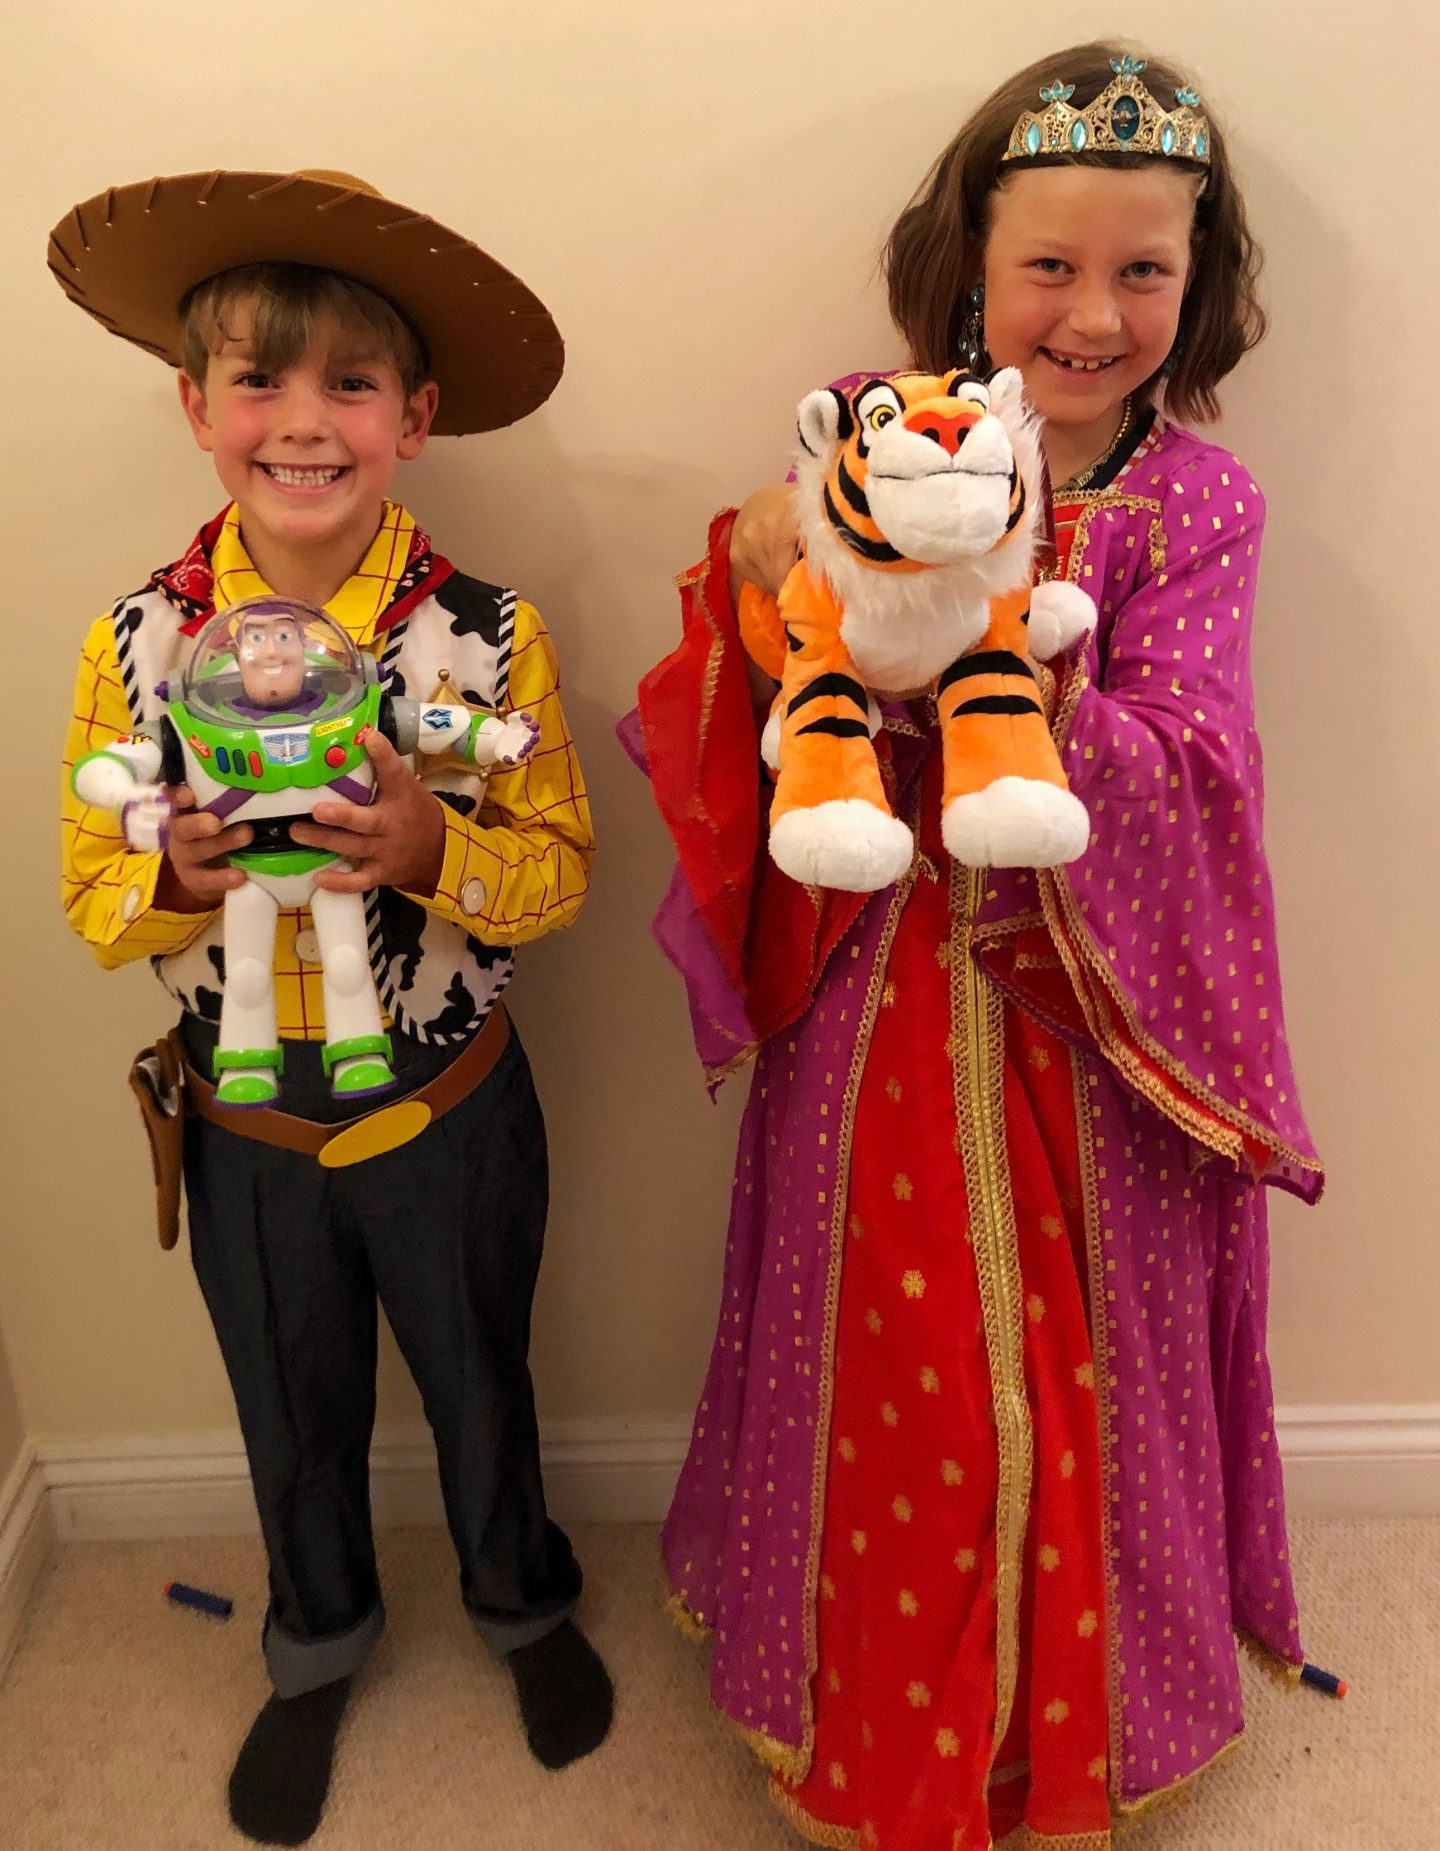 A photo of my son and daughter dressed up in their shopDisney costumes, or rather, it's Woody and Princess Jasmine!